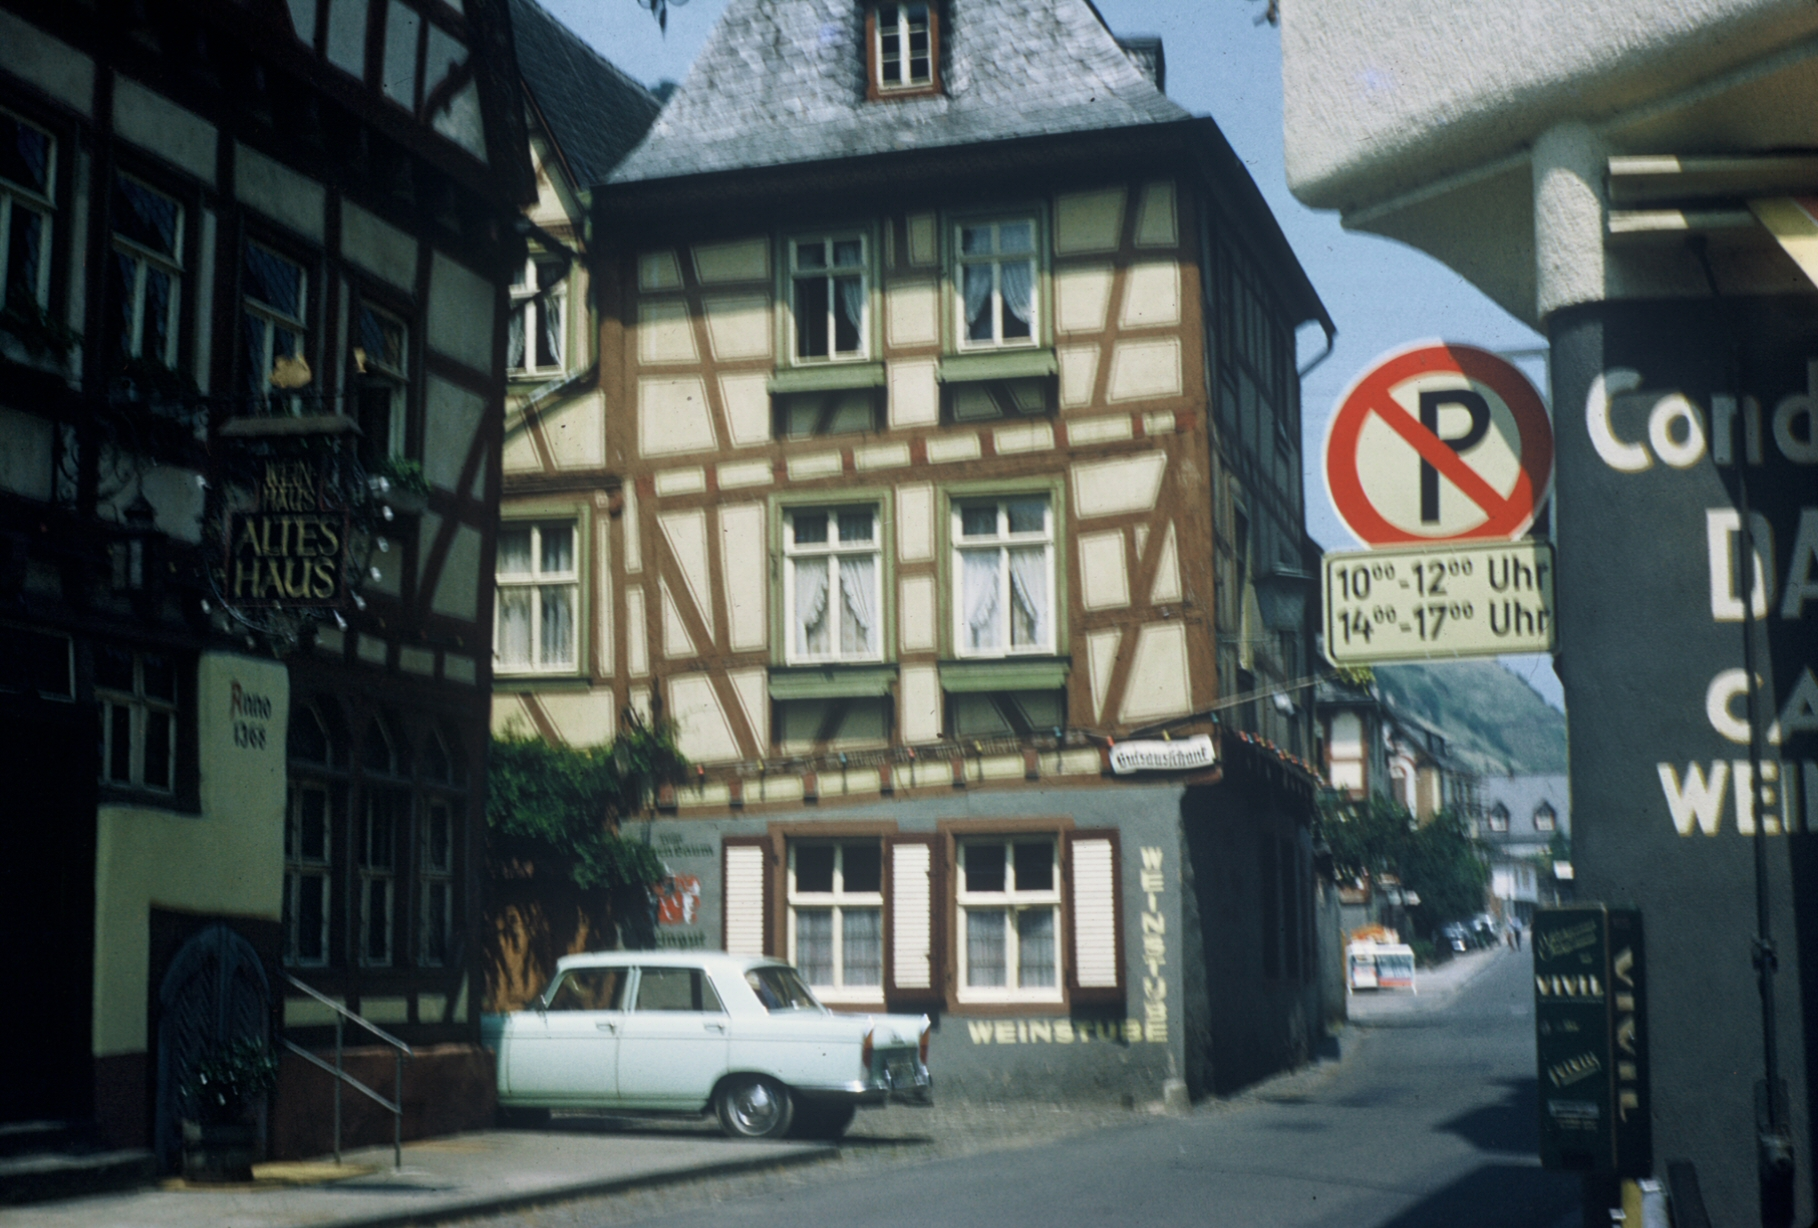 Winehaus near Rhine